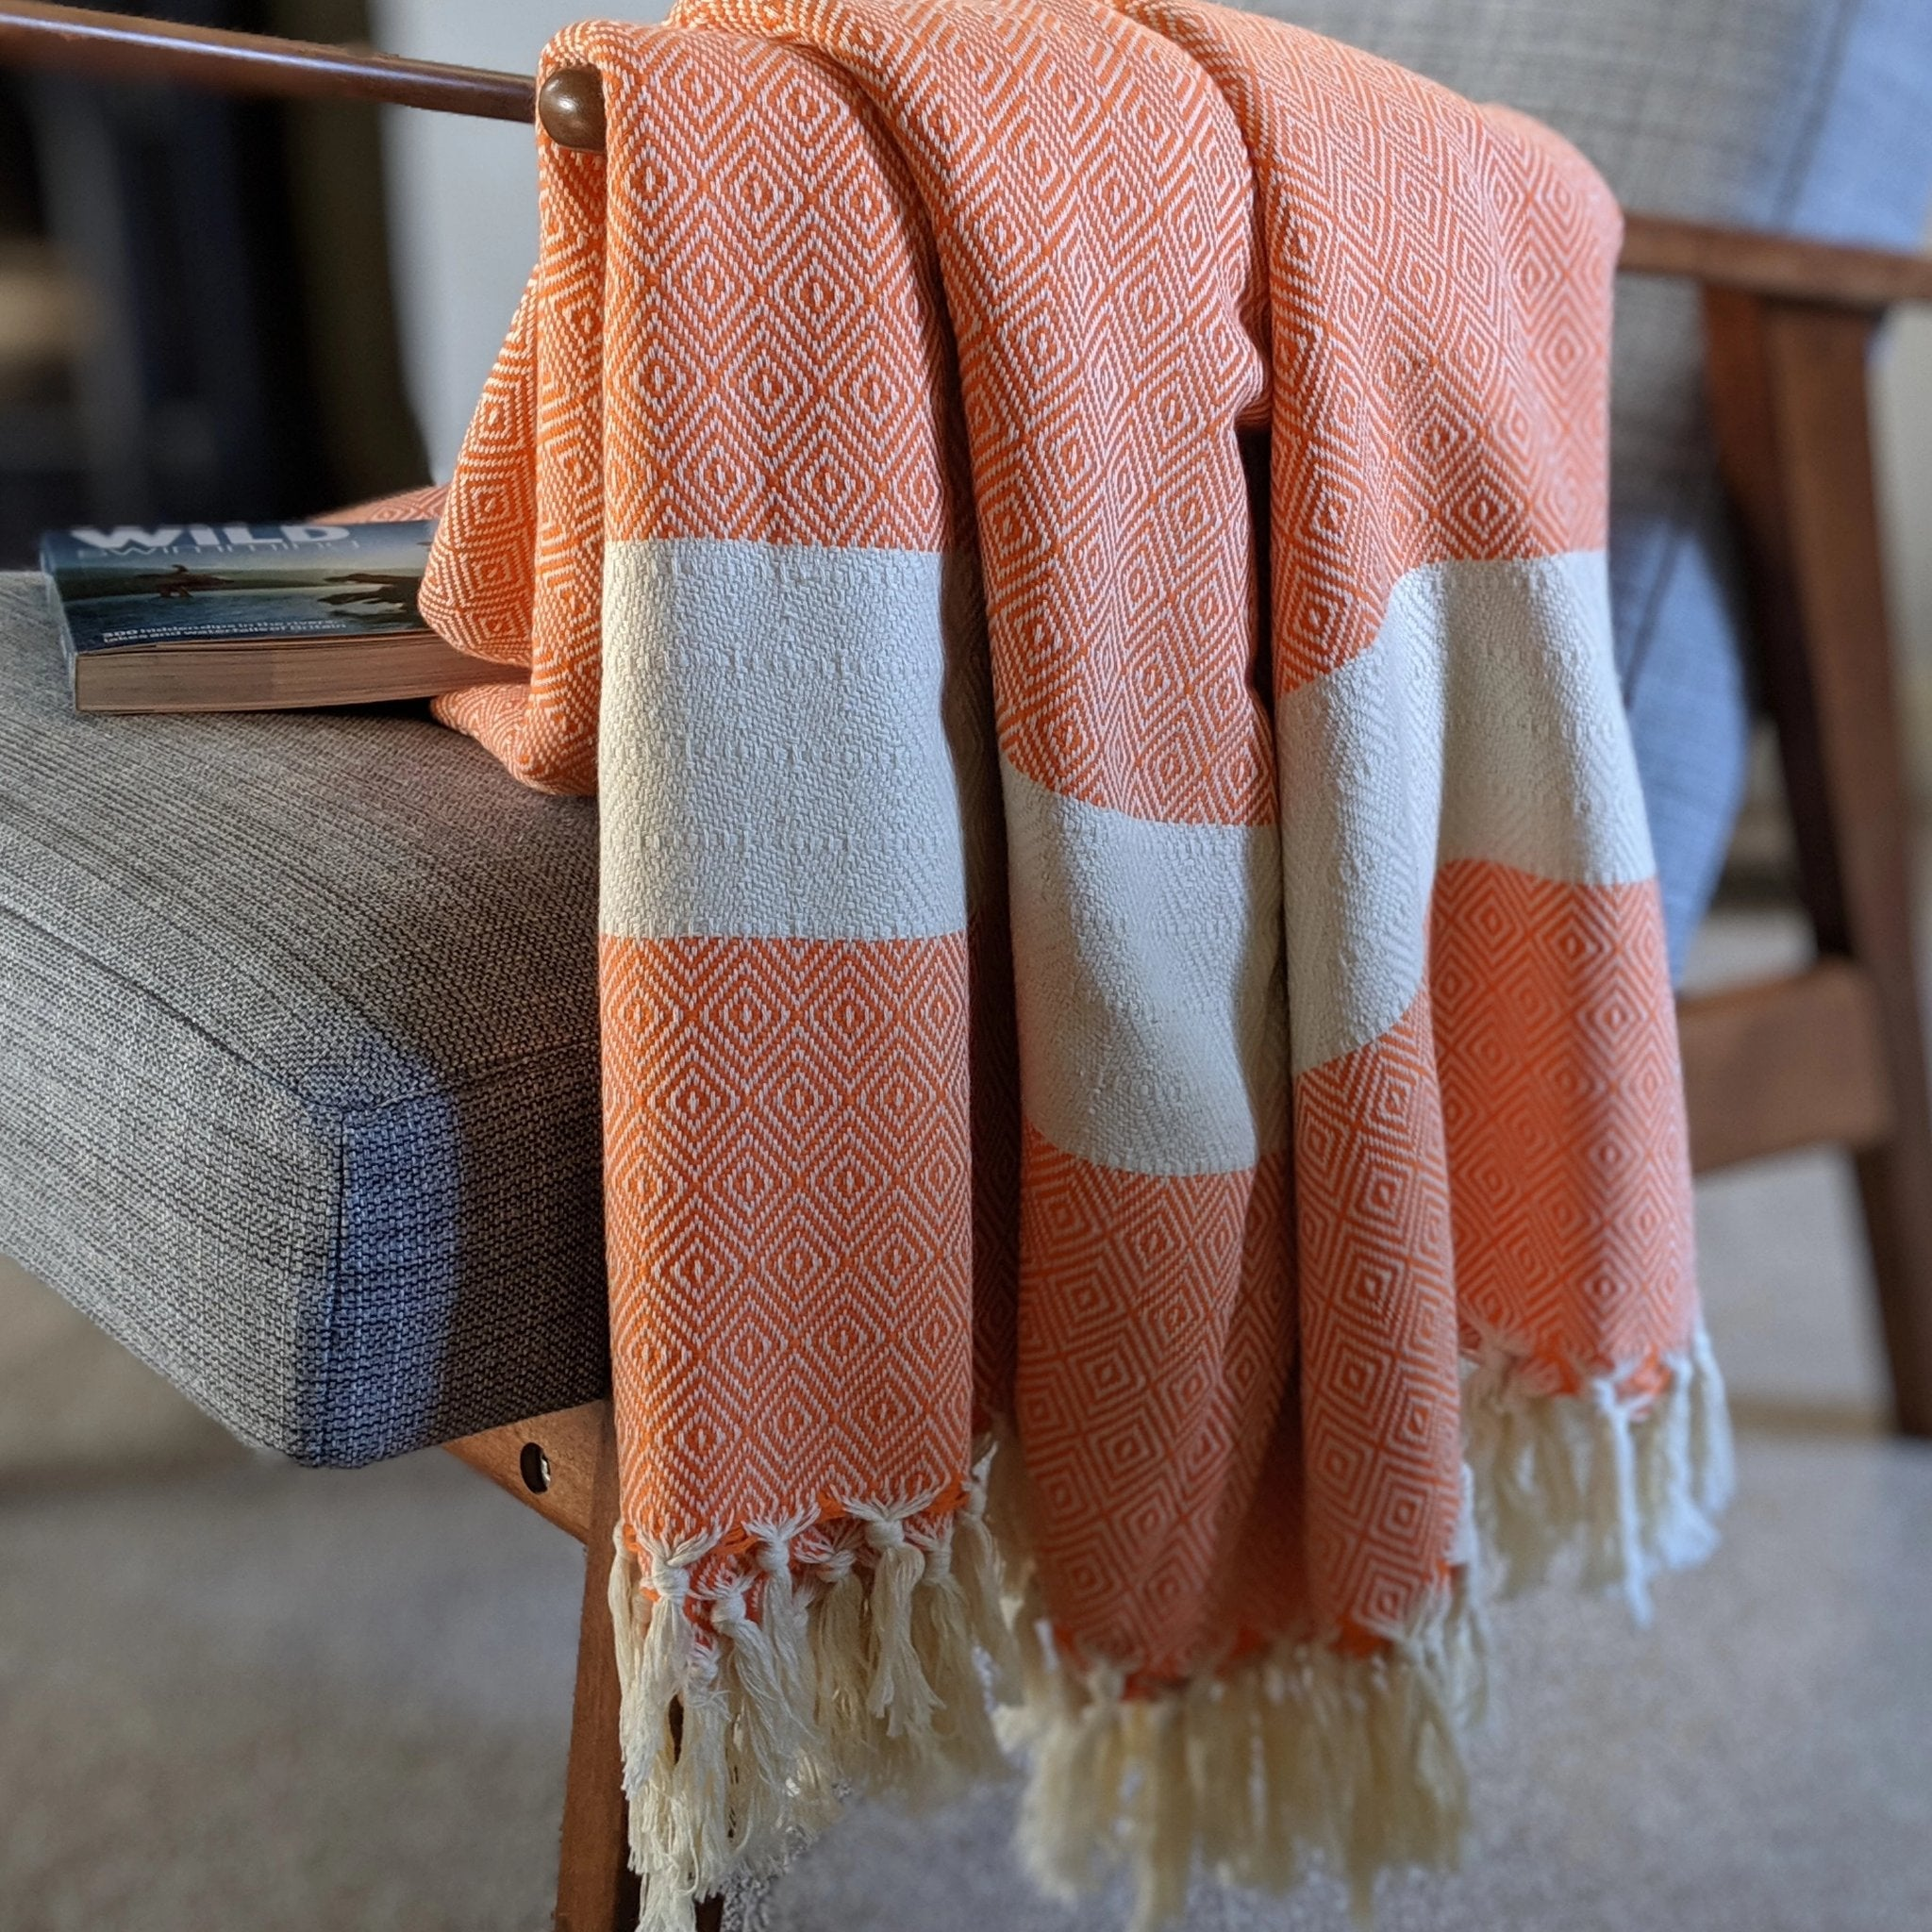 Orange colour organic cotton blanket draped over chair